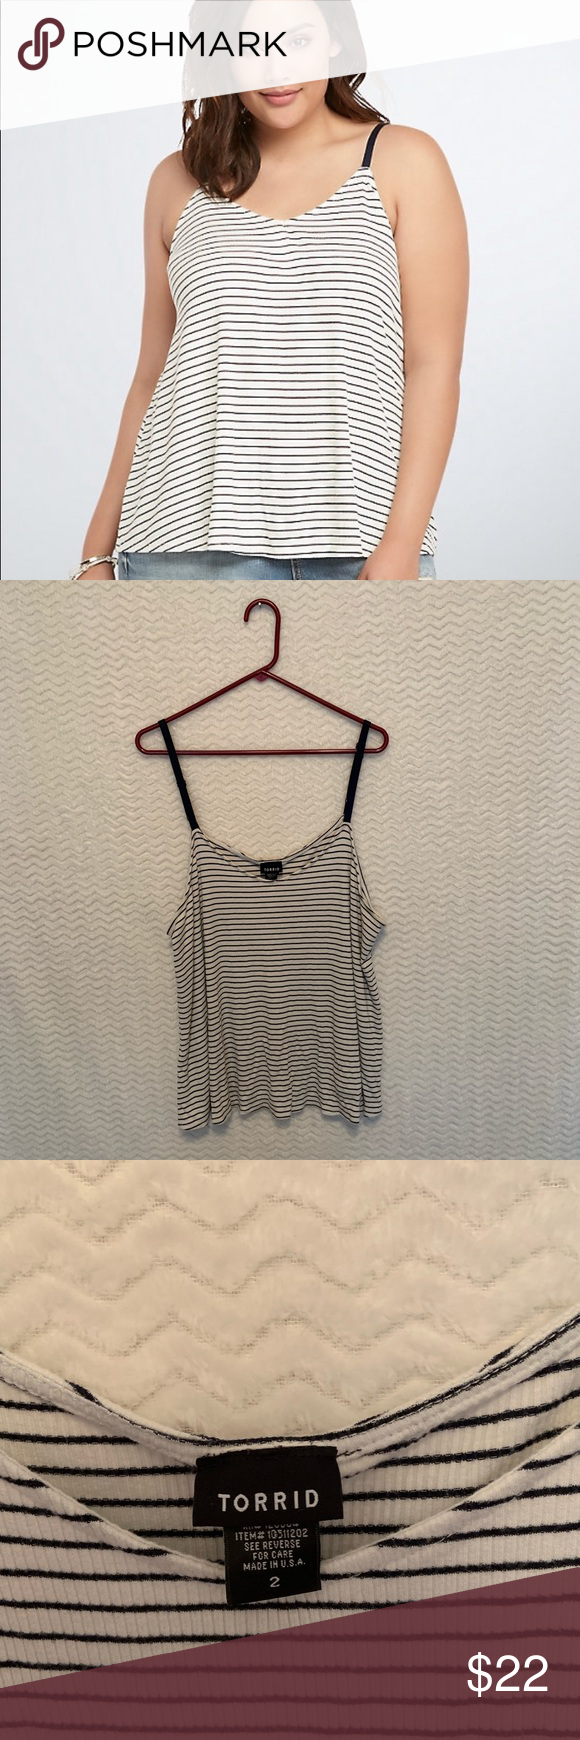 89cd3e44f206 Torrid Flowy Tank Navy and white striped, spaghetti style tank. Flattering  cut! Super cute on. 🖤Condition: Pre-owned. Excellent condition.